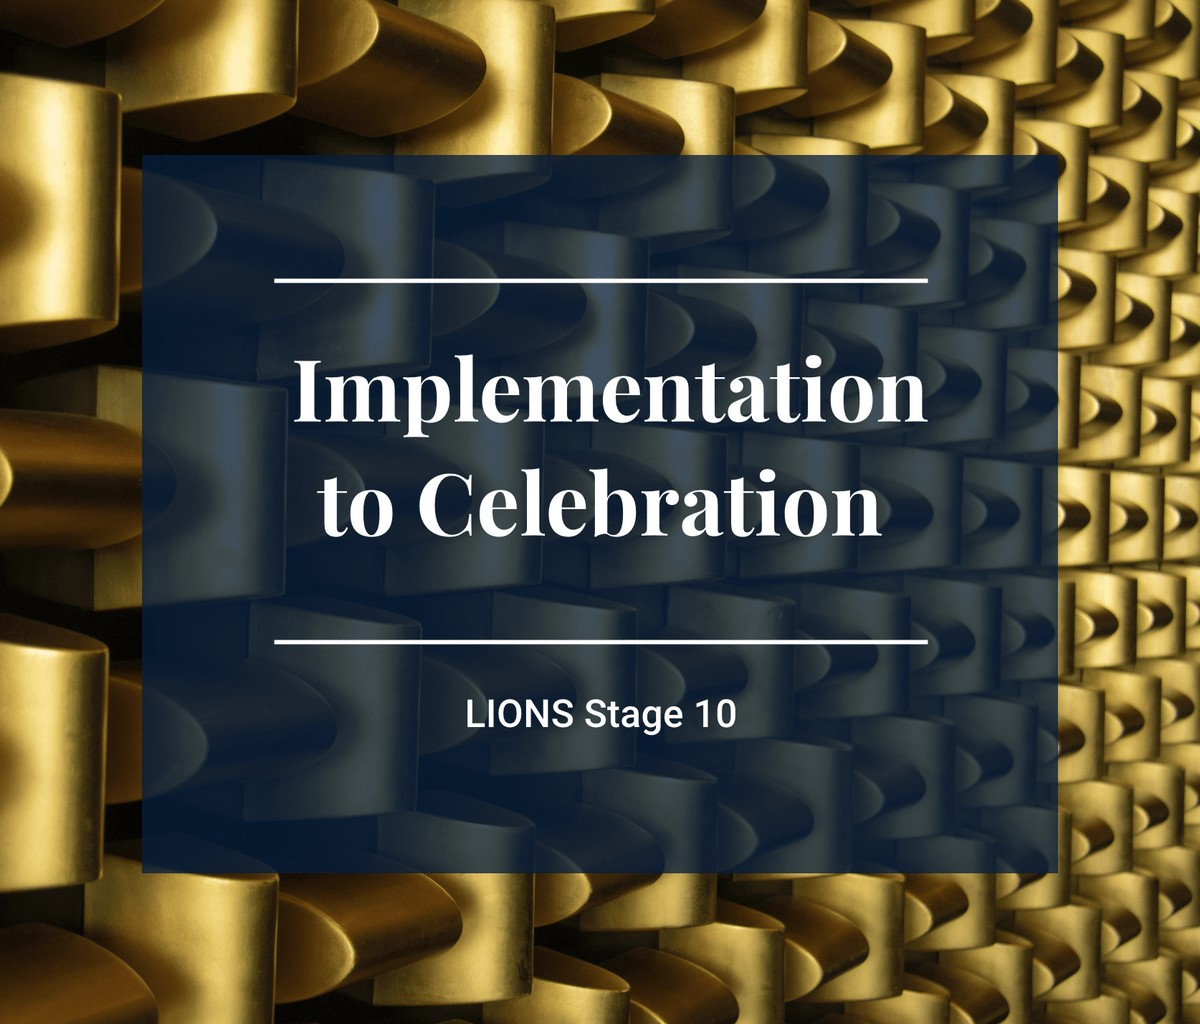 Lions Program Stage 10 Image